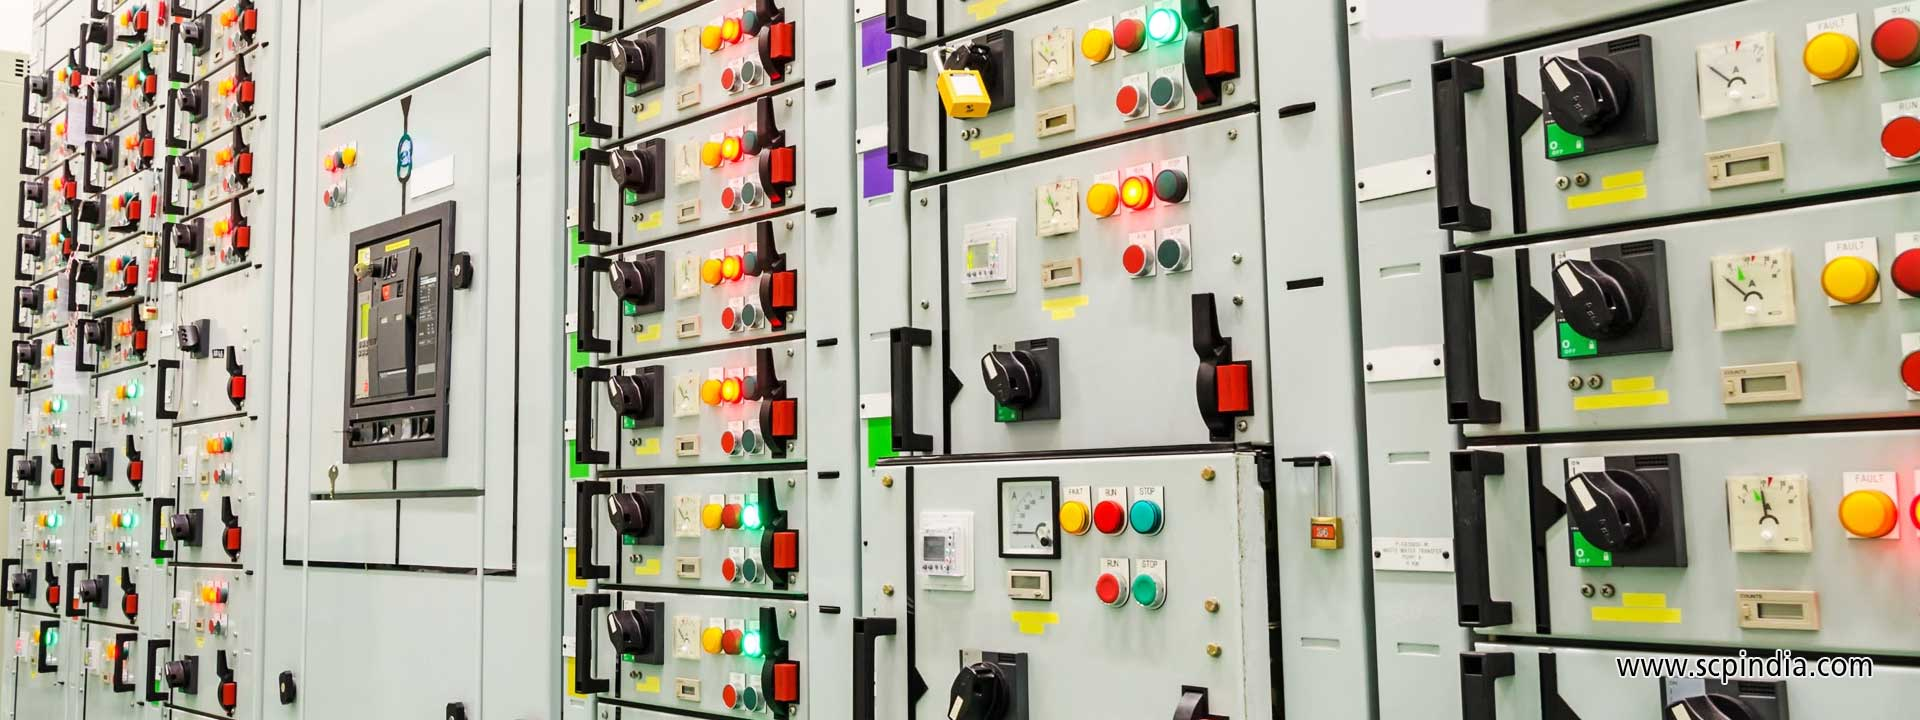 power distribution control panels manufacturers exporters in india punjab ludhiana